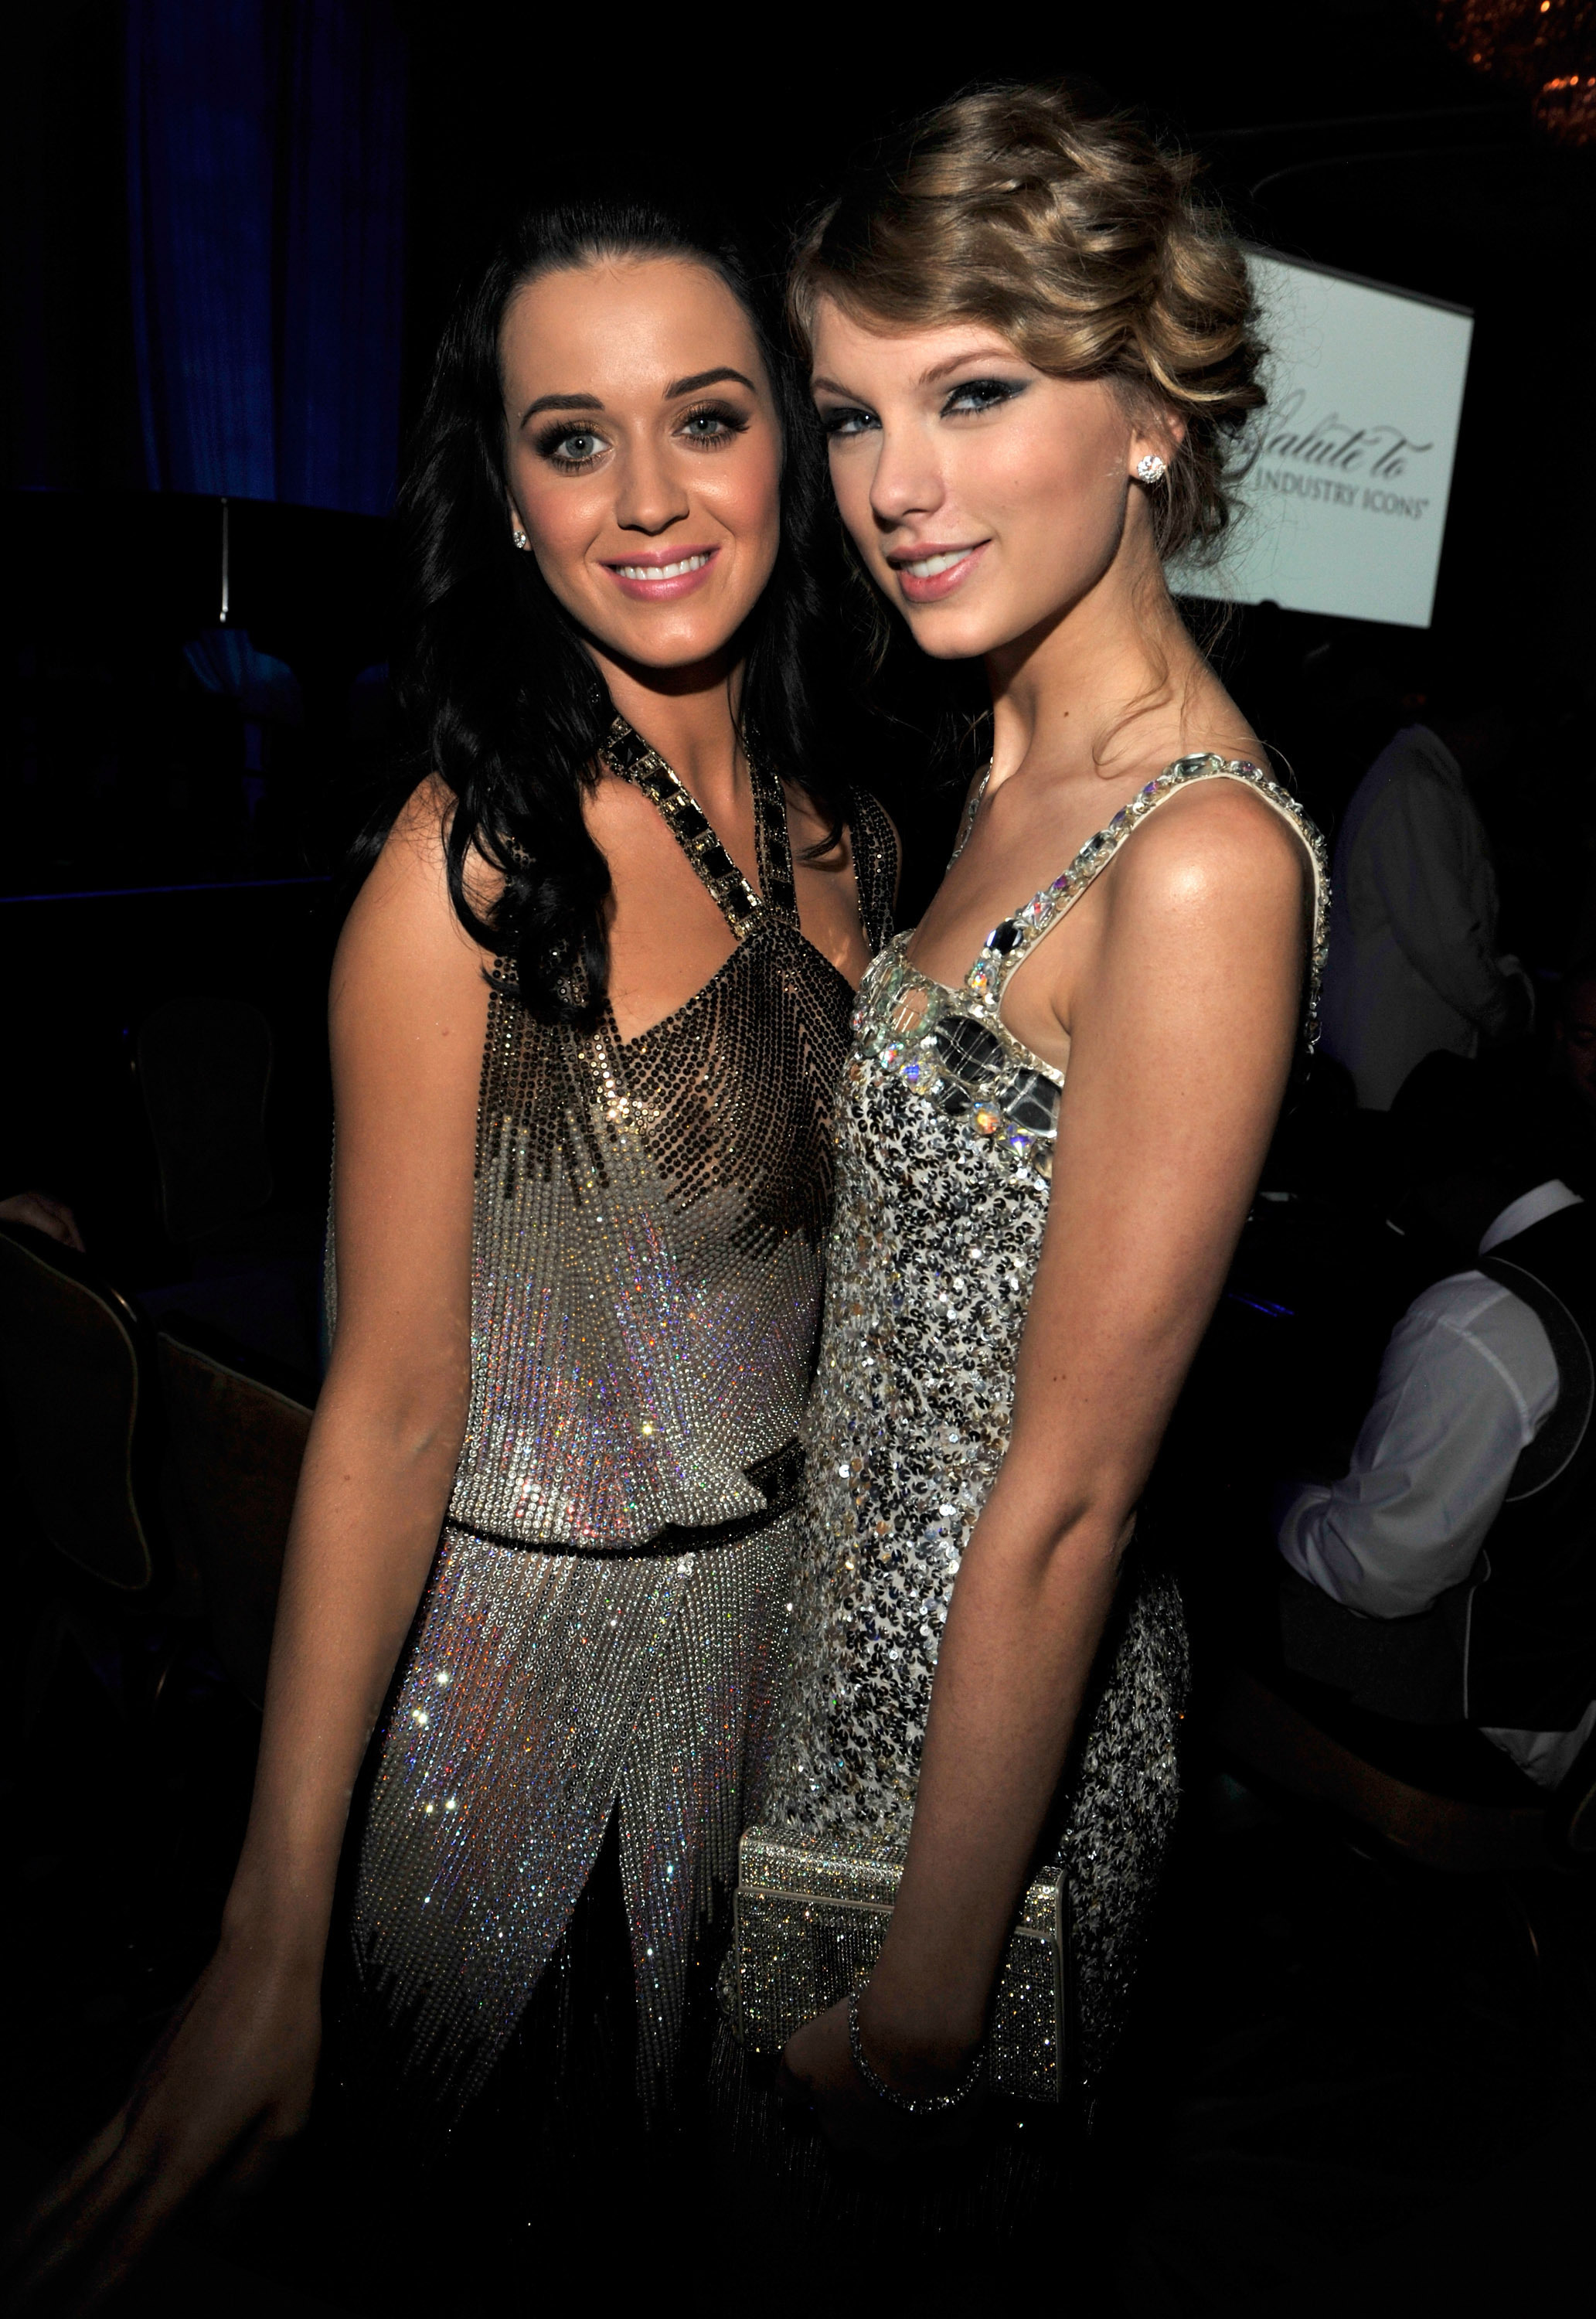 Is Katy Perry making a Taylor Swift dis album?